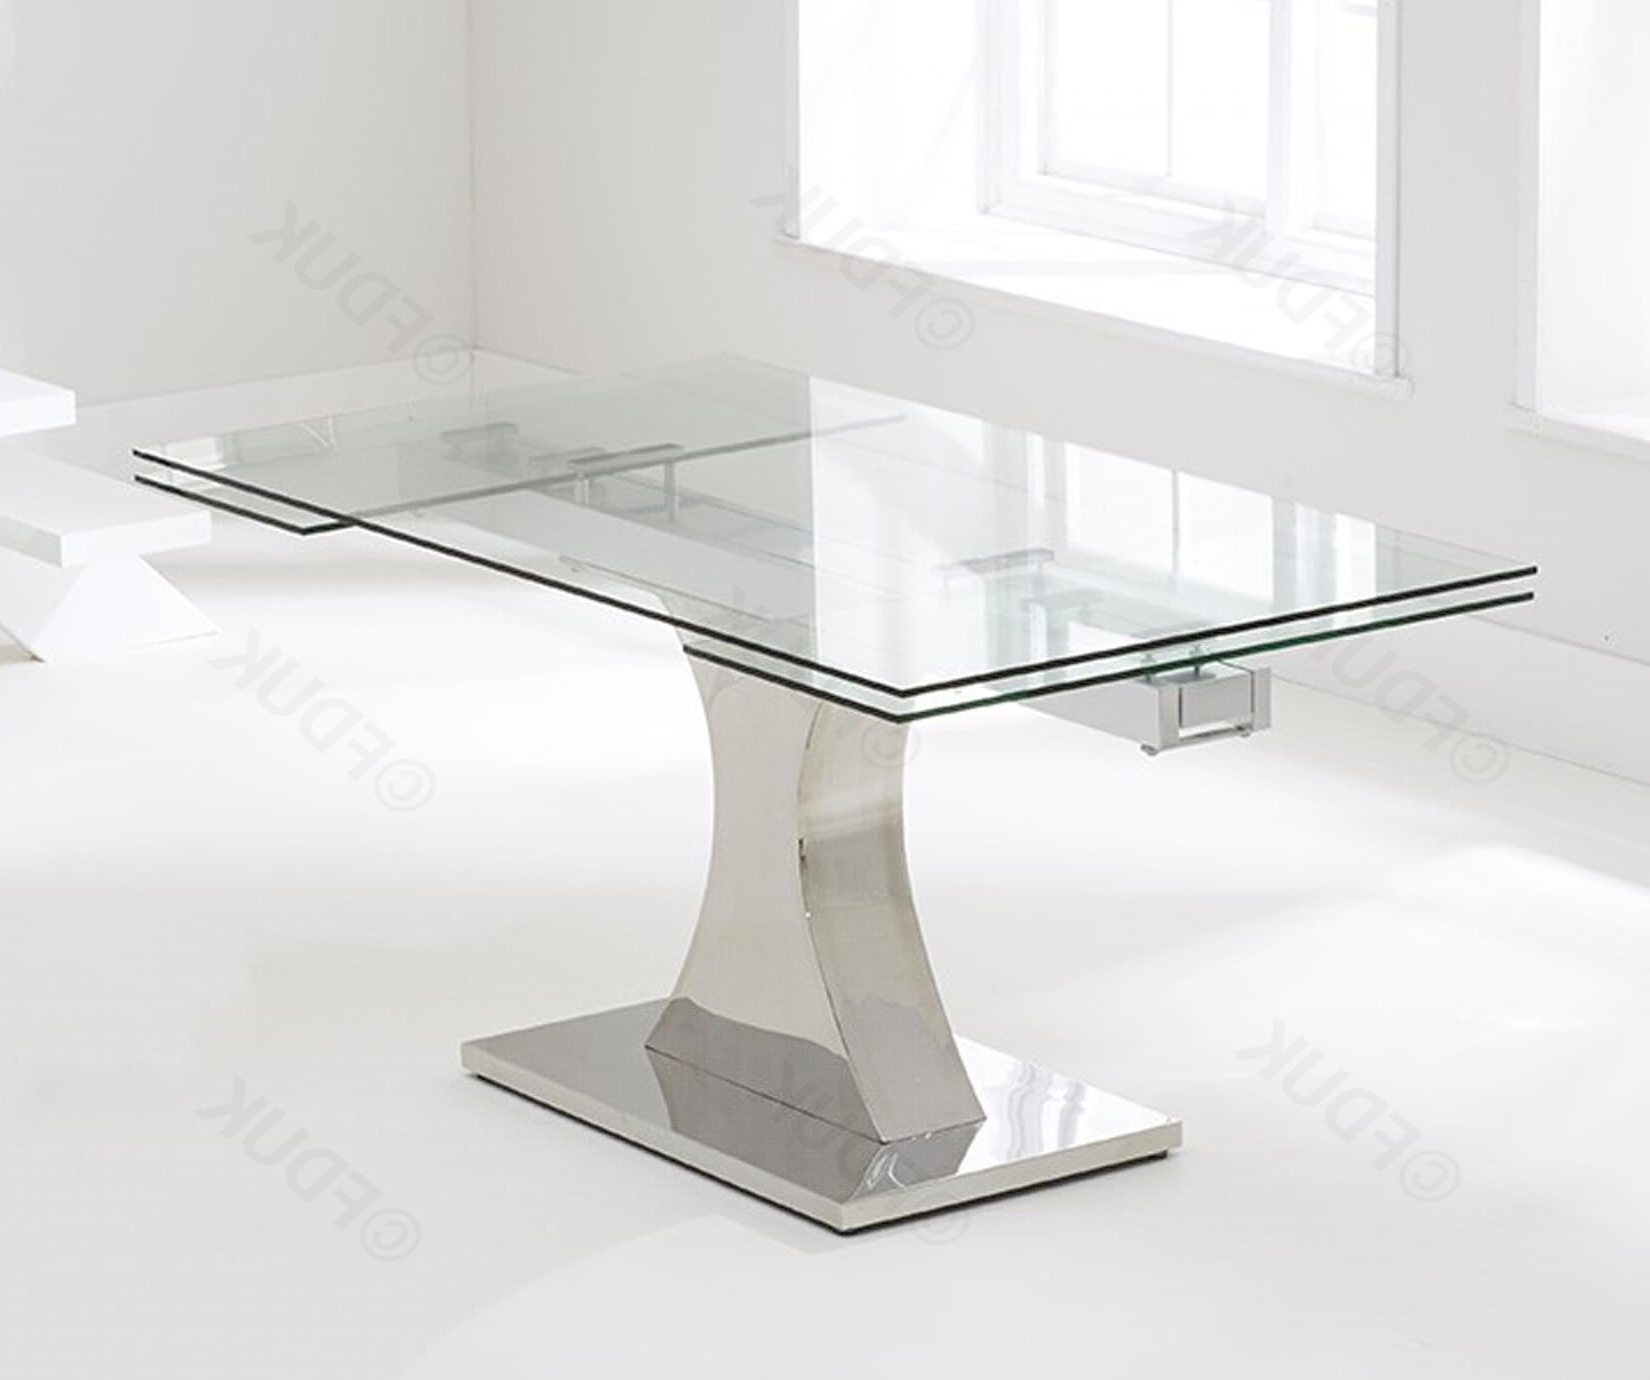 Glass Extending Dining Tables For Popular Mark Harris Amber Glass Extending Dining Table Only Fduk Best Price  Guarantee We Will Beat Our Competitors Price! Give Our Sales Team A Call On  0116 (Gallery 21 of 25)